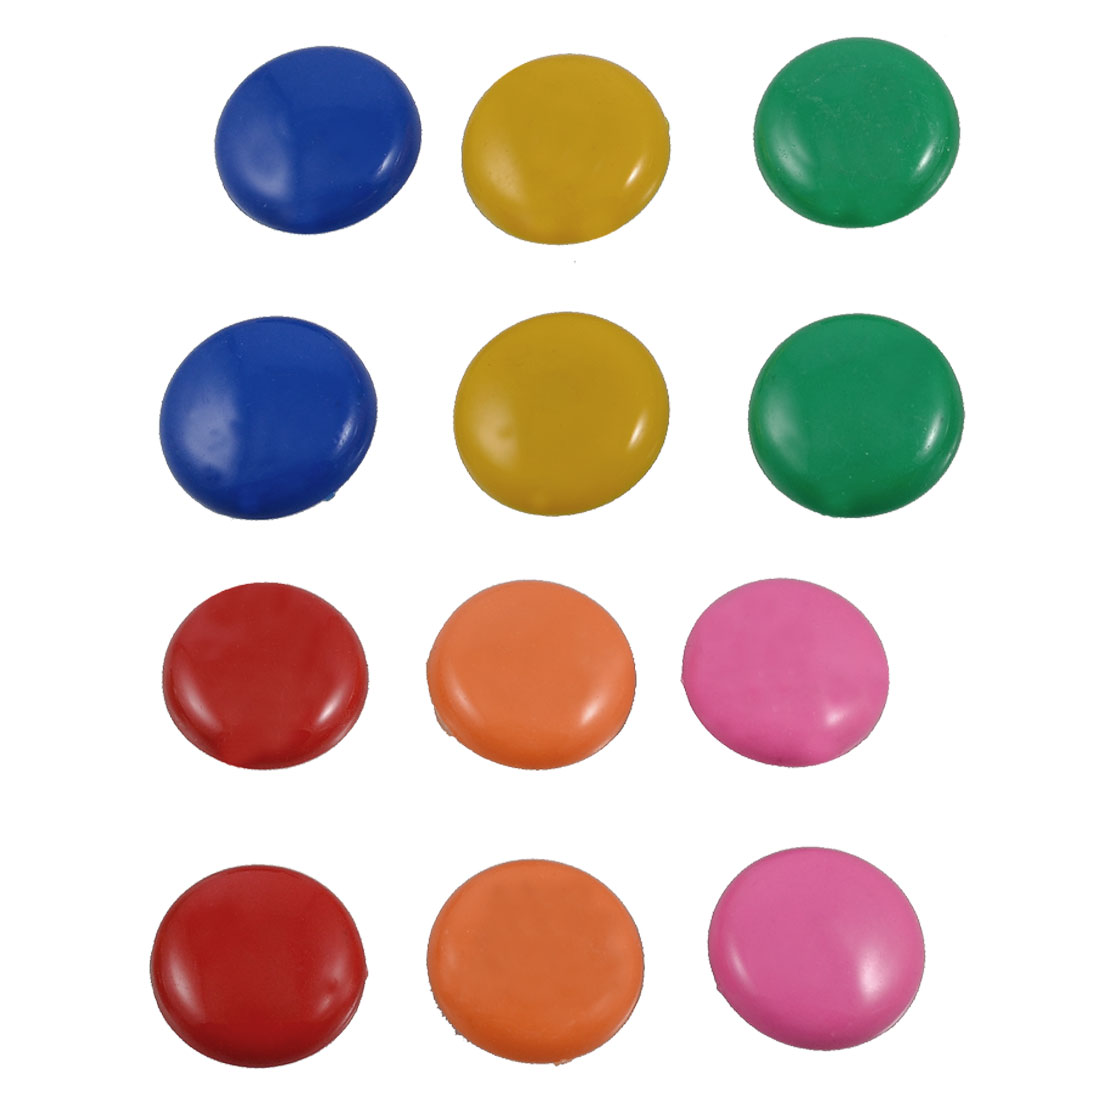 12 Pcs Office Whiteboard Fridge Refrigerator Magnets Buttons Round Shape